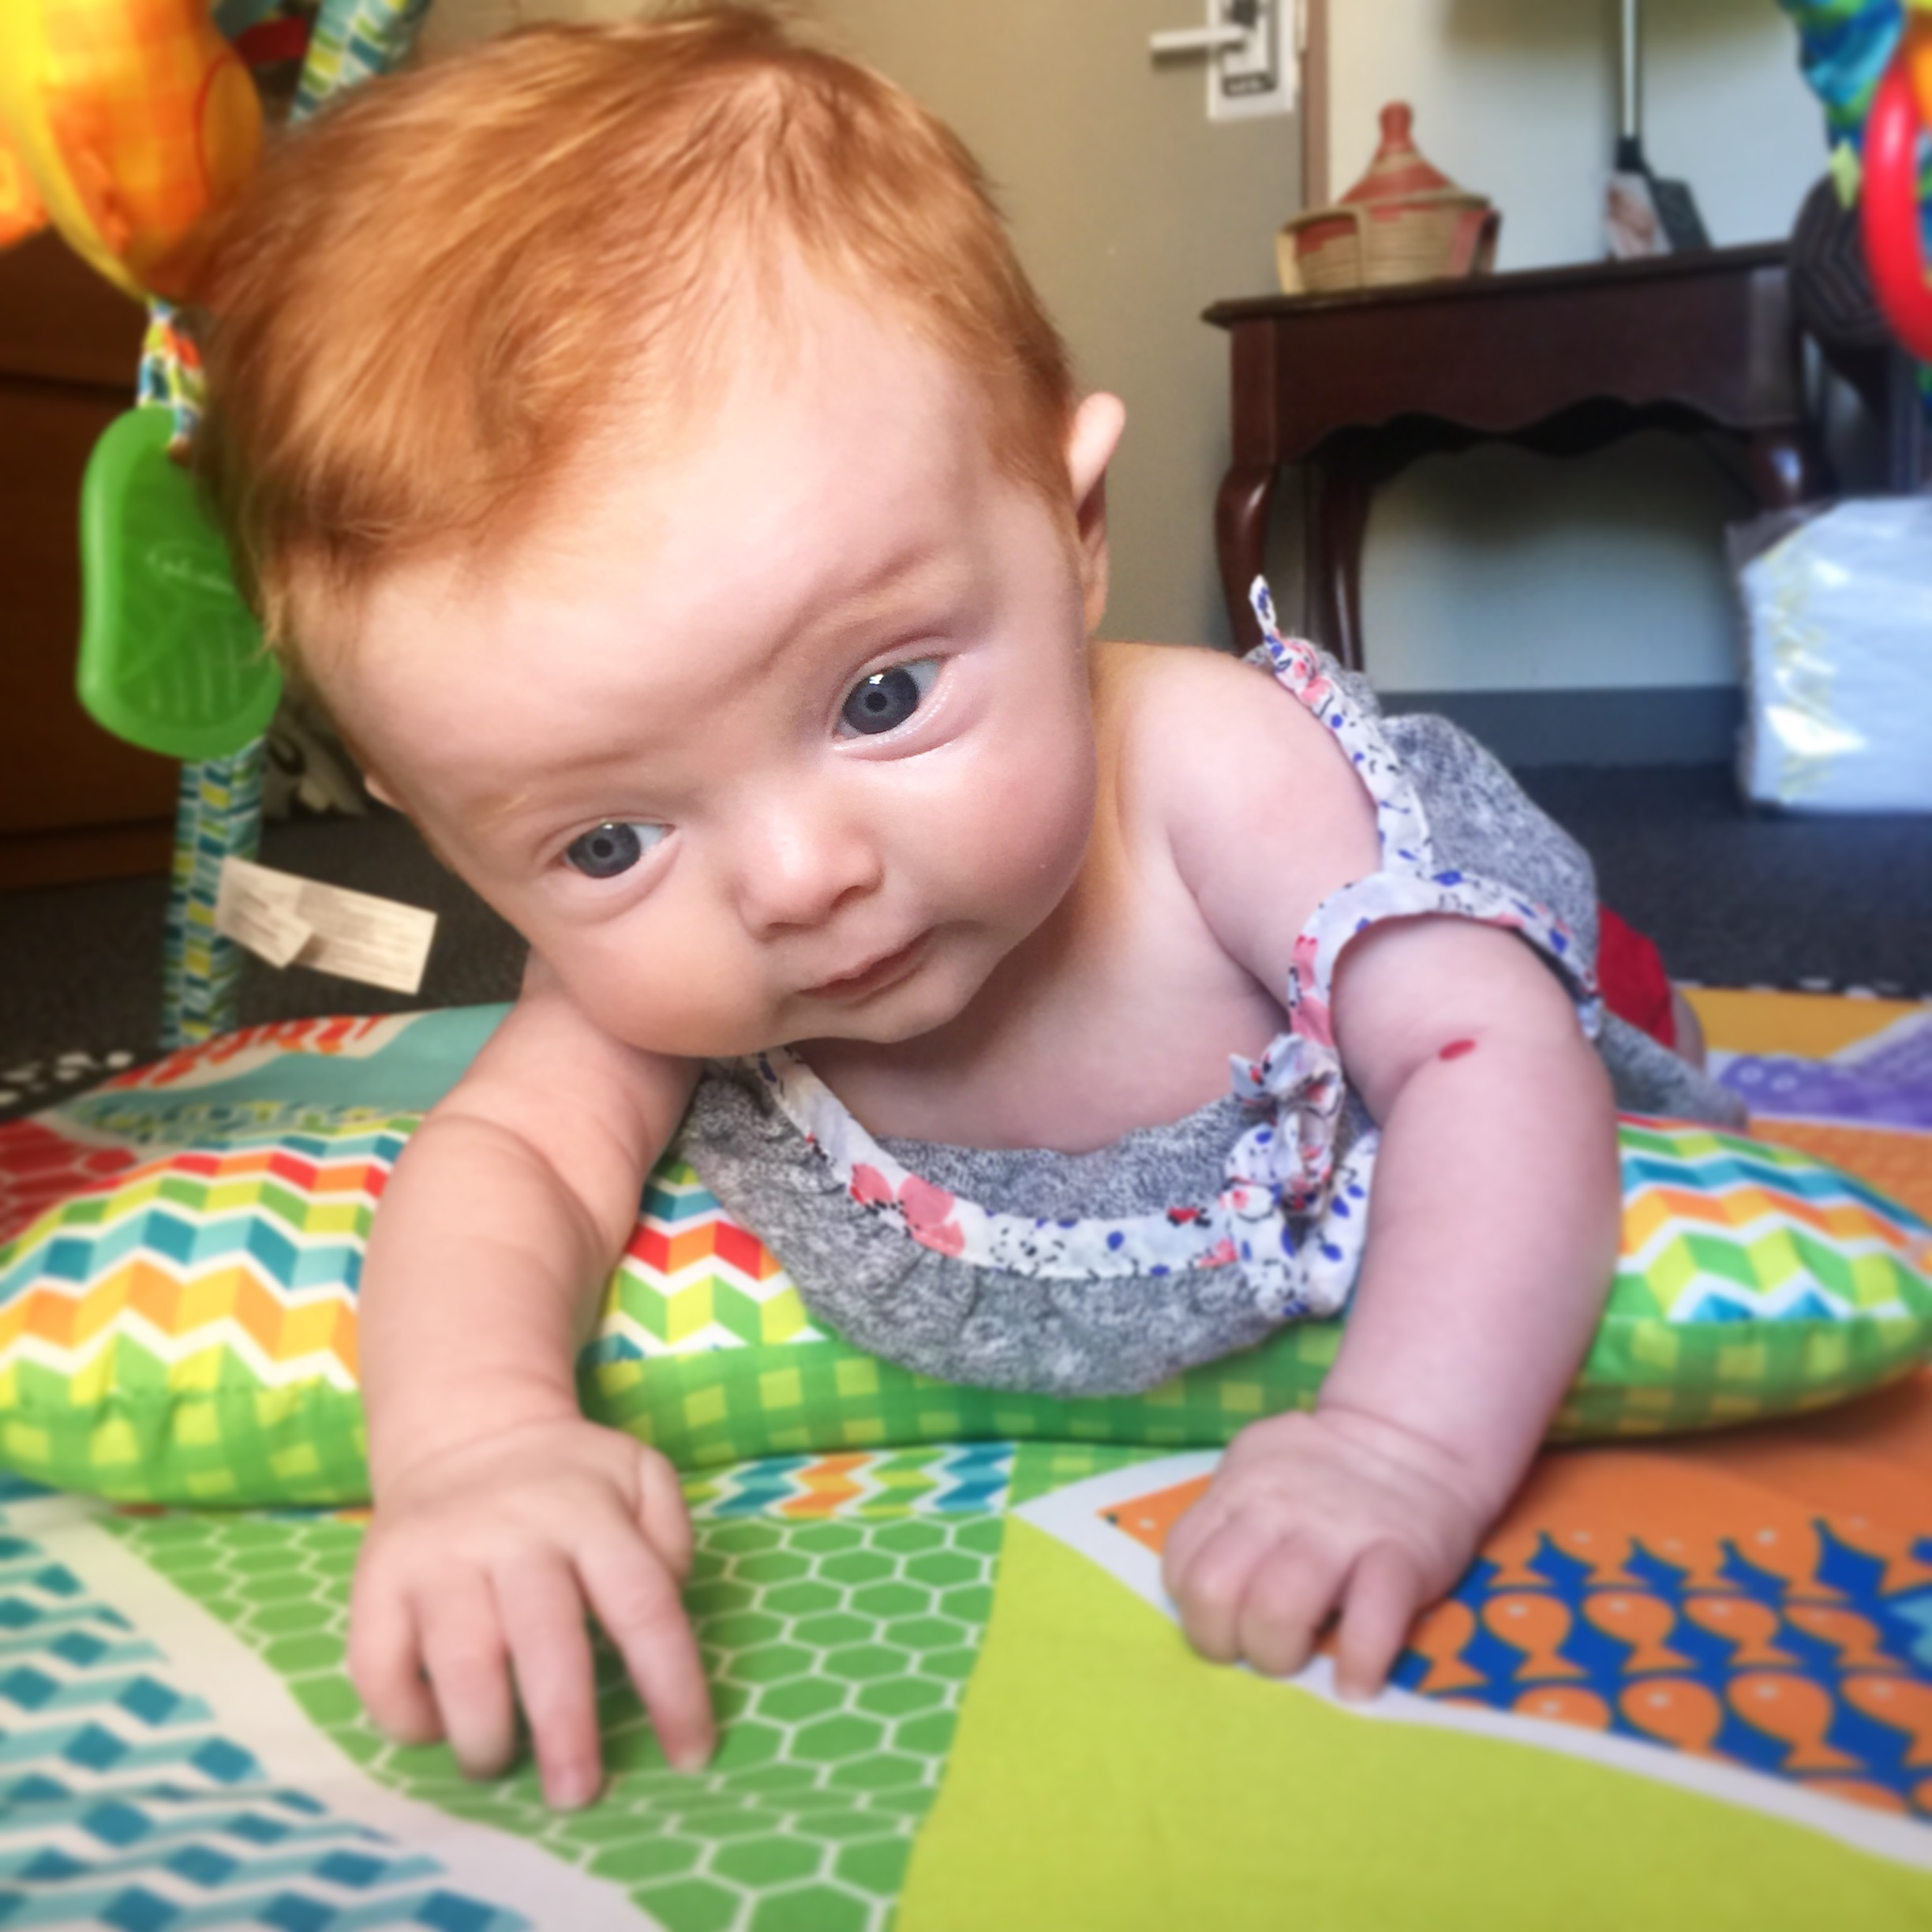 Tummy time on the play mat